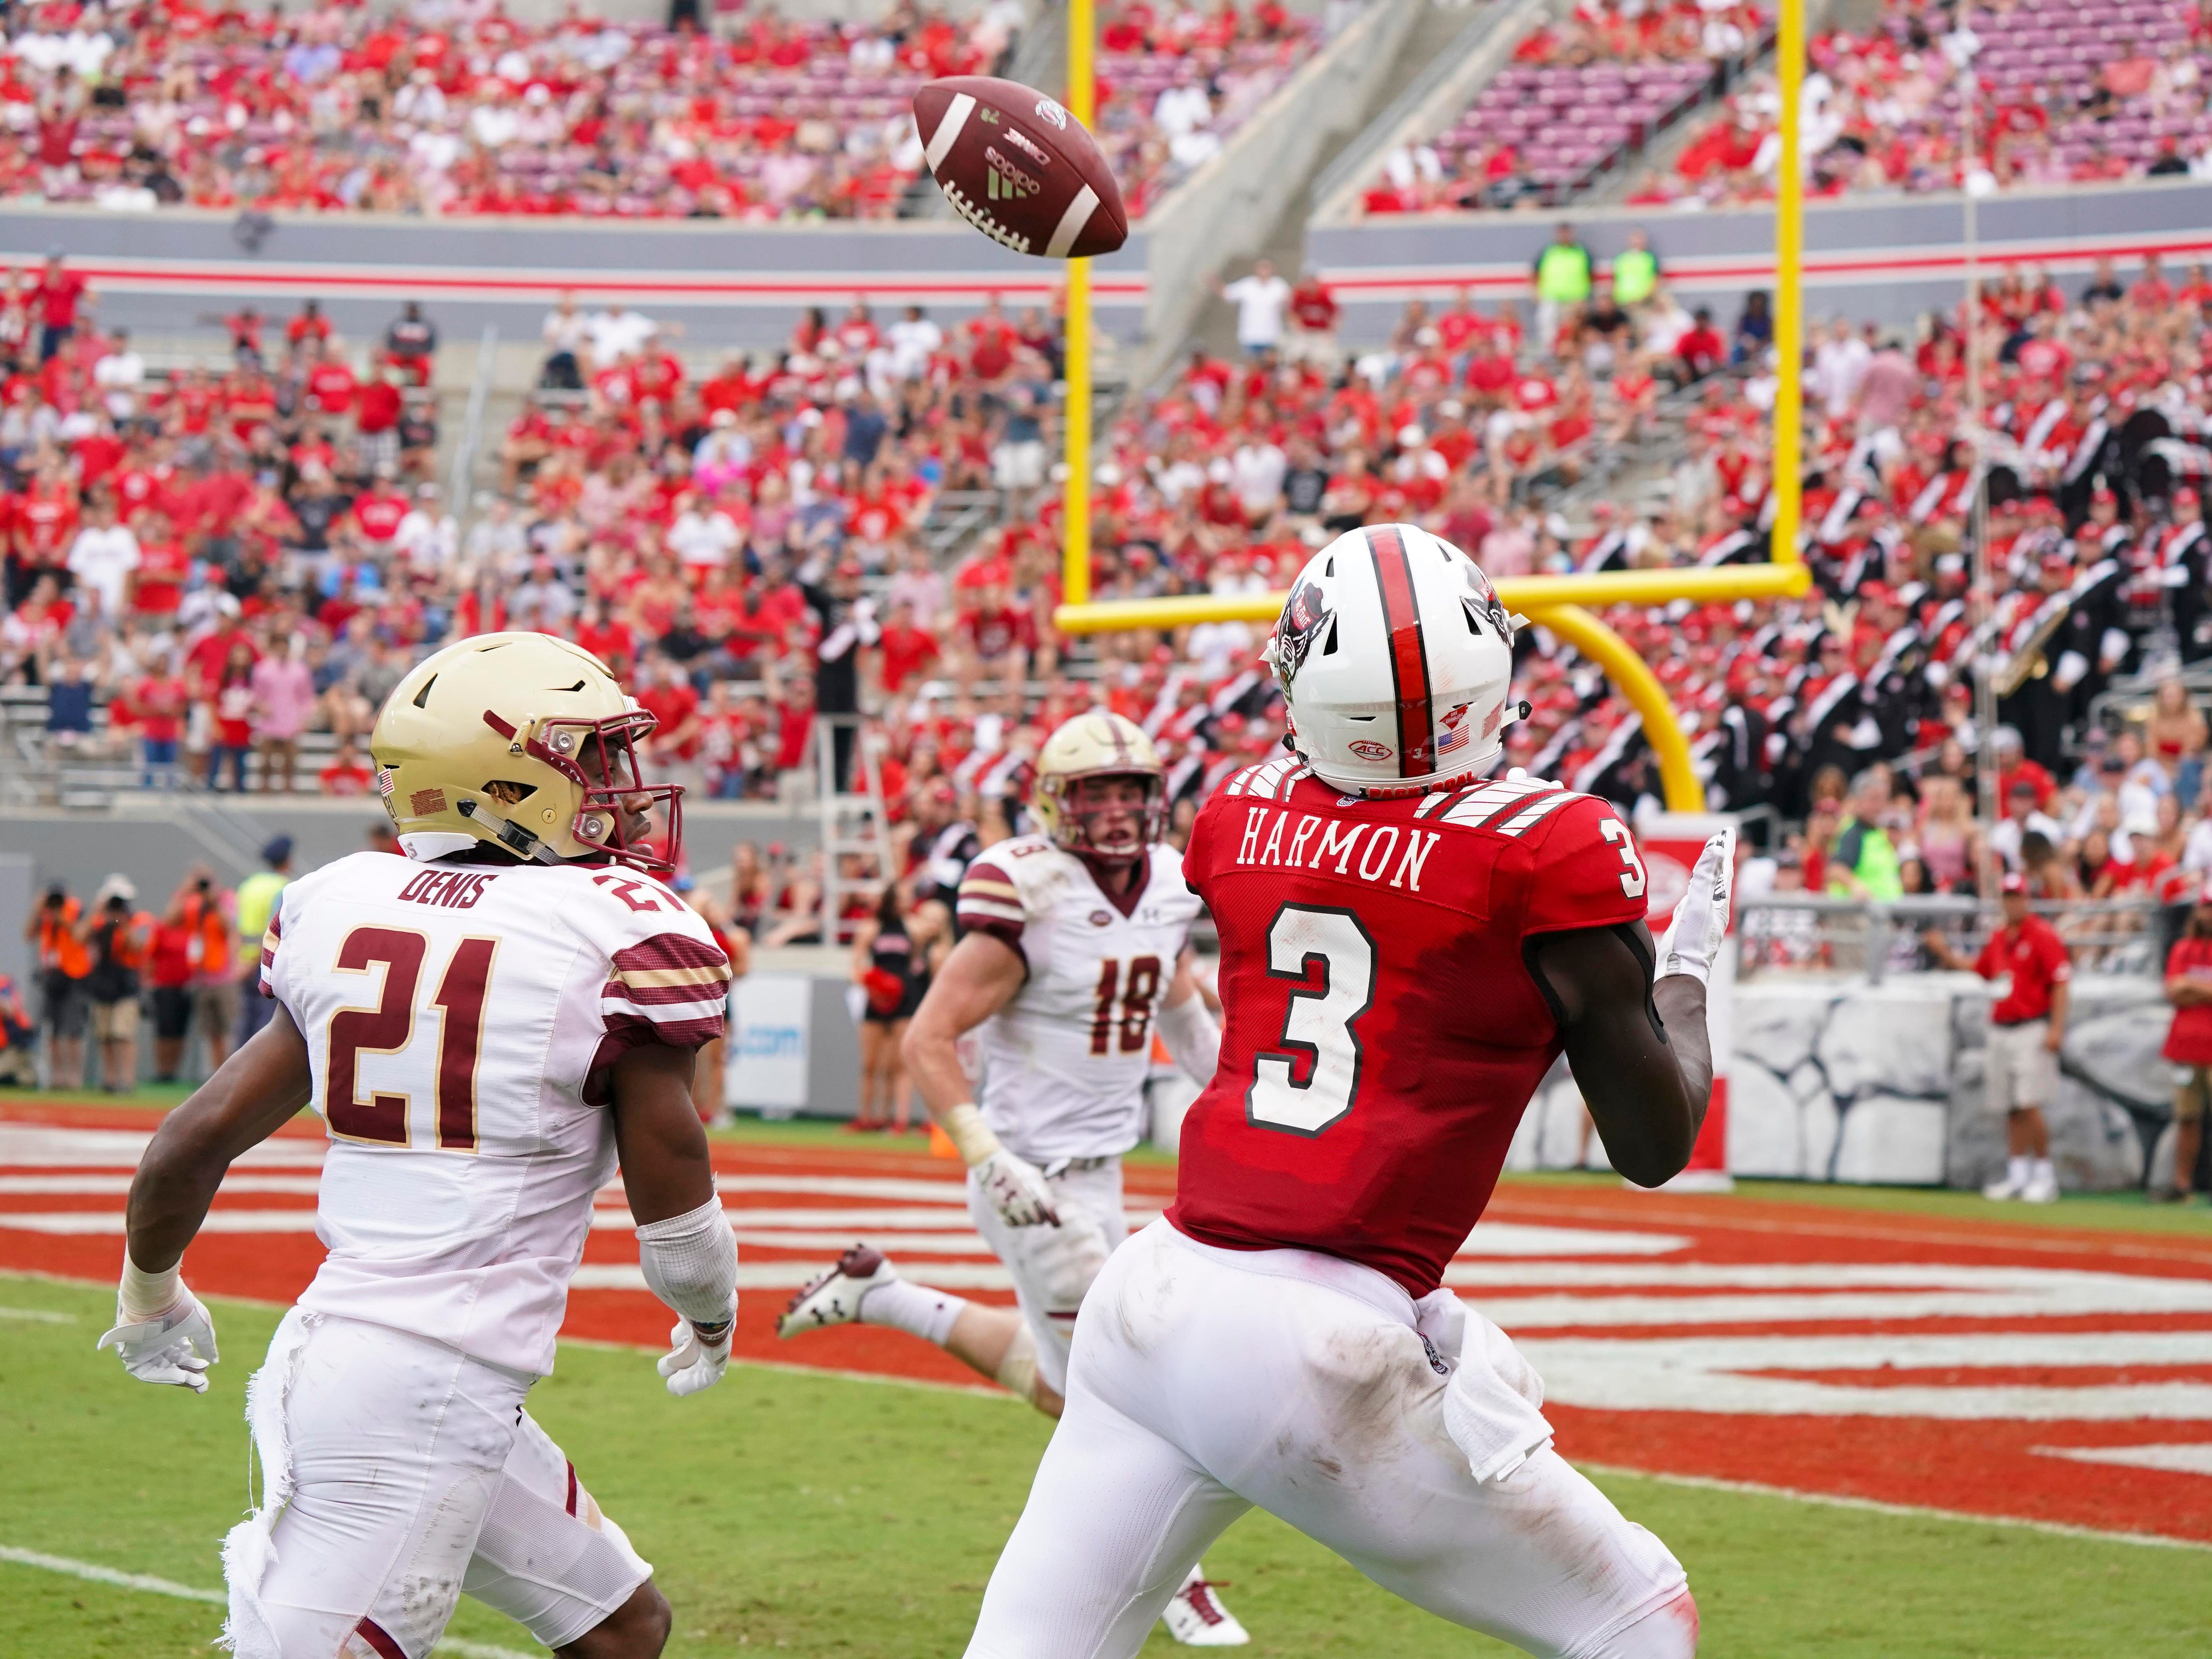 North Carolina State Wolfpack wide receiver Kelvin Harmon catches a touchdown pass against Boston College Eagles defensive back Lukas Denis during the second half at Carter-Finley Stadium.